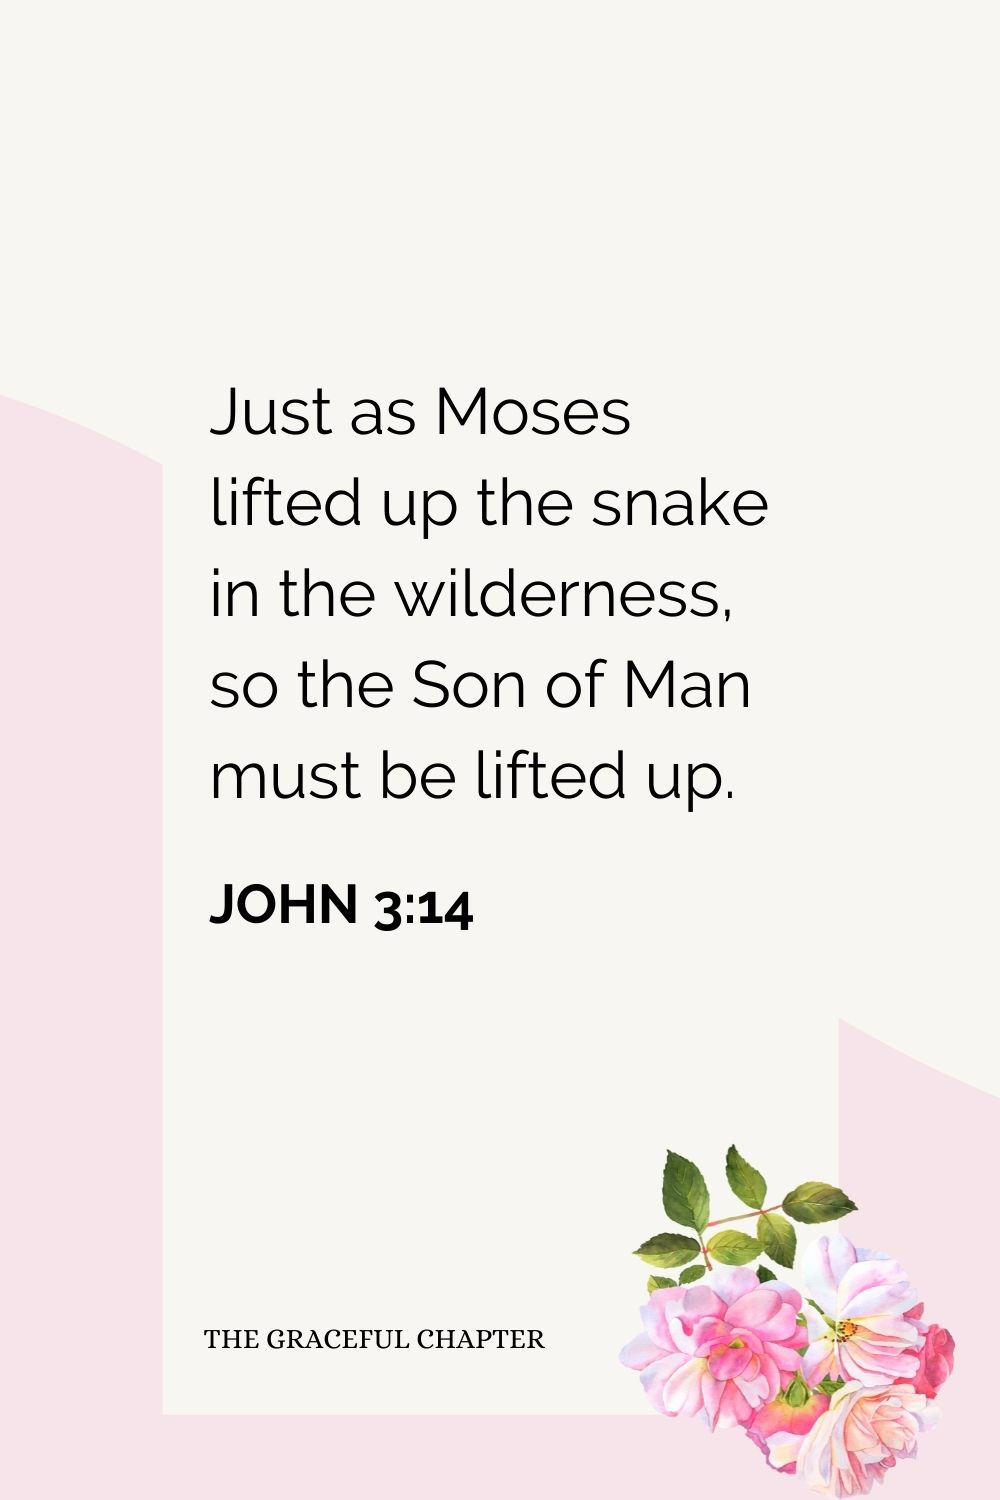 Just as Moses lifted up the snake in the wilderness, so the Son of Man must be lifted up.  John 3:14